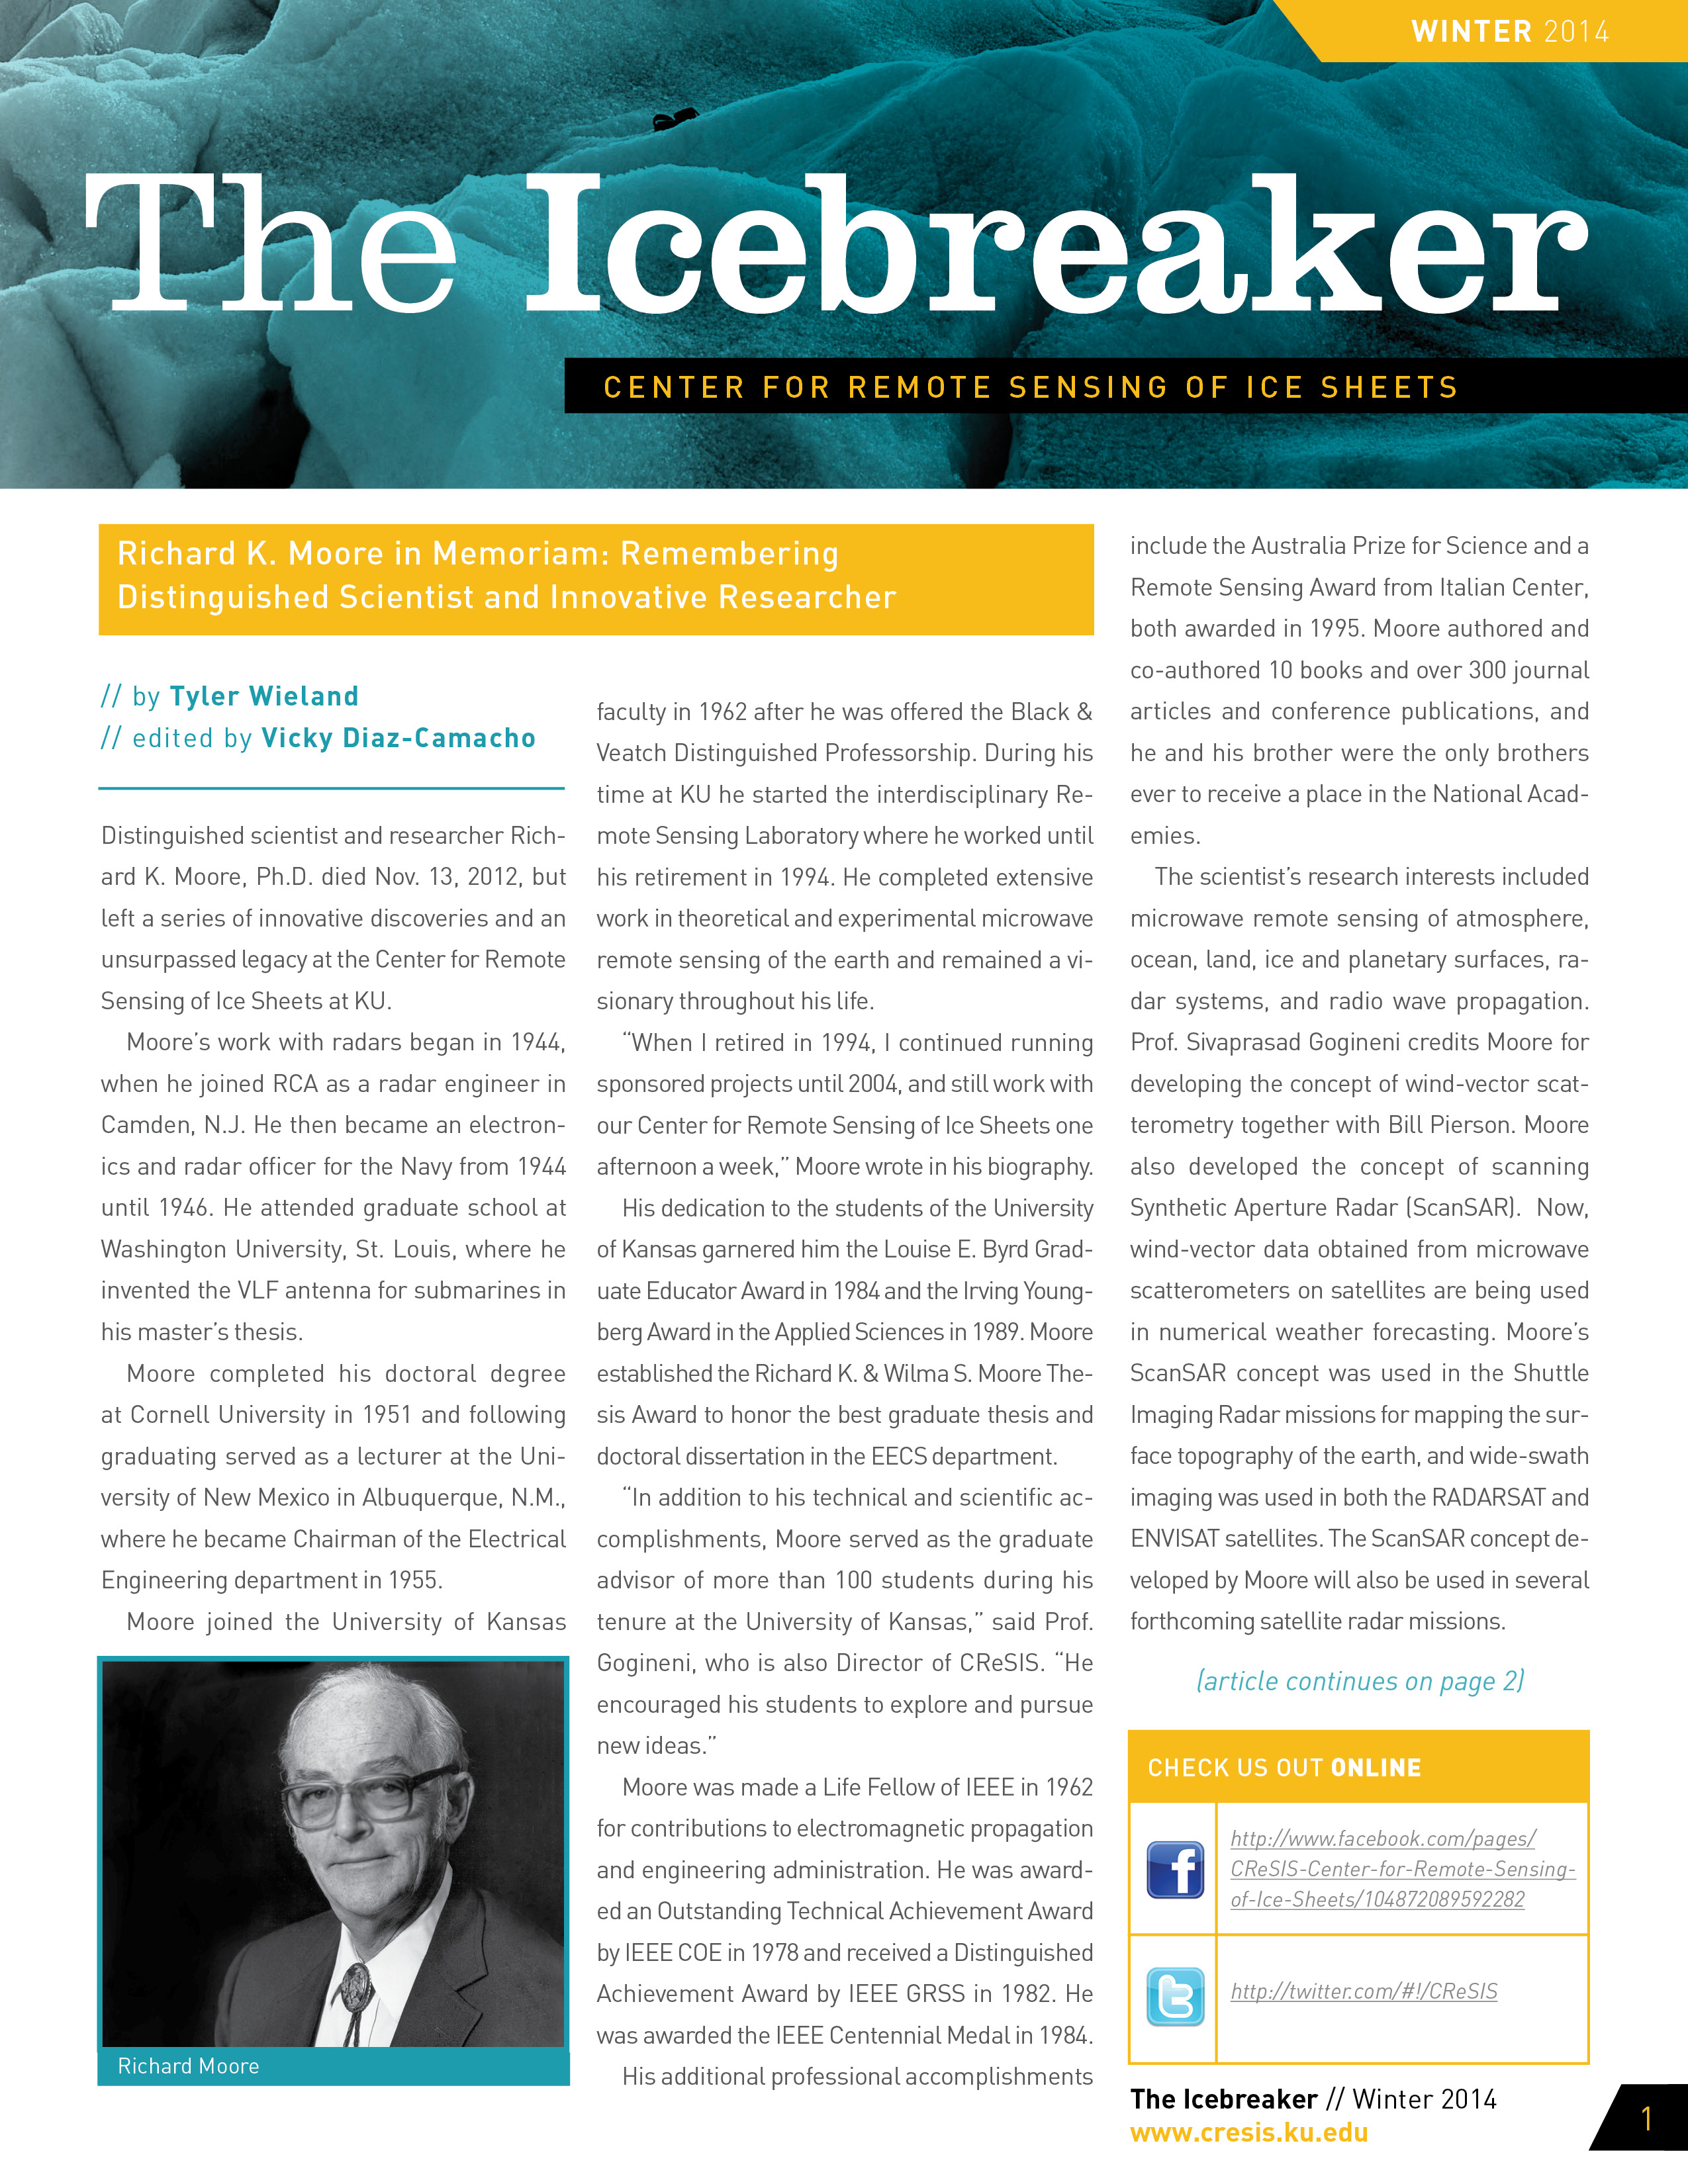 Download the Winter 2014 Icebreaker